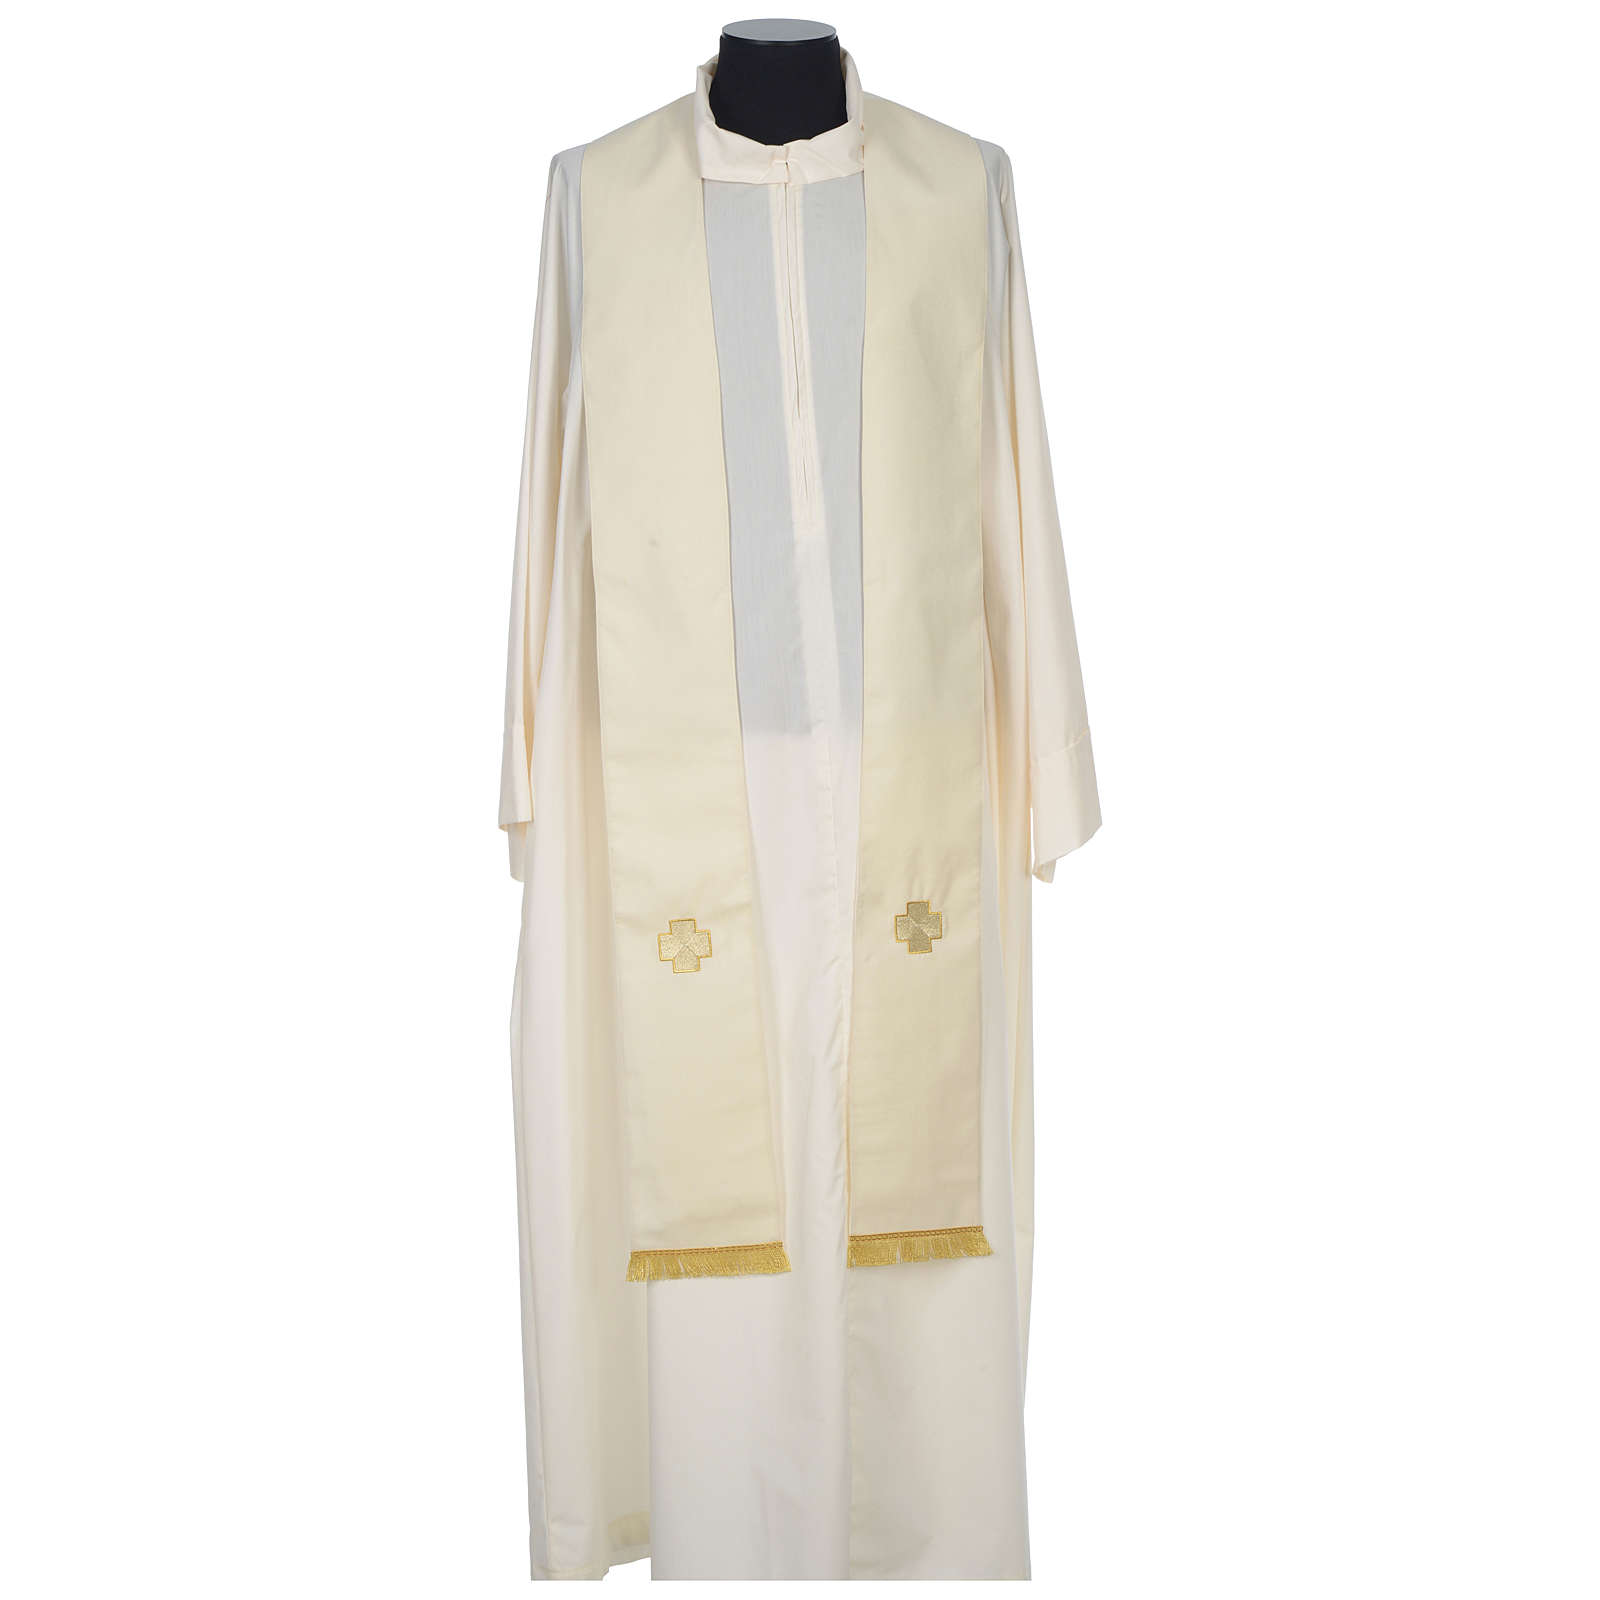 Chasuble 100% wool with crosses and Swarovski crystals 4